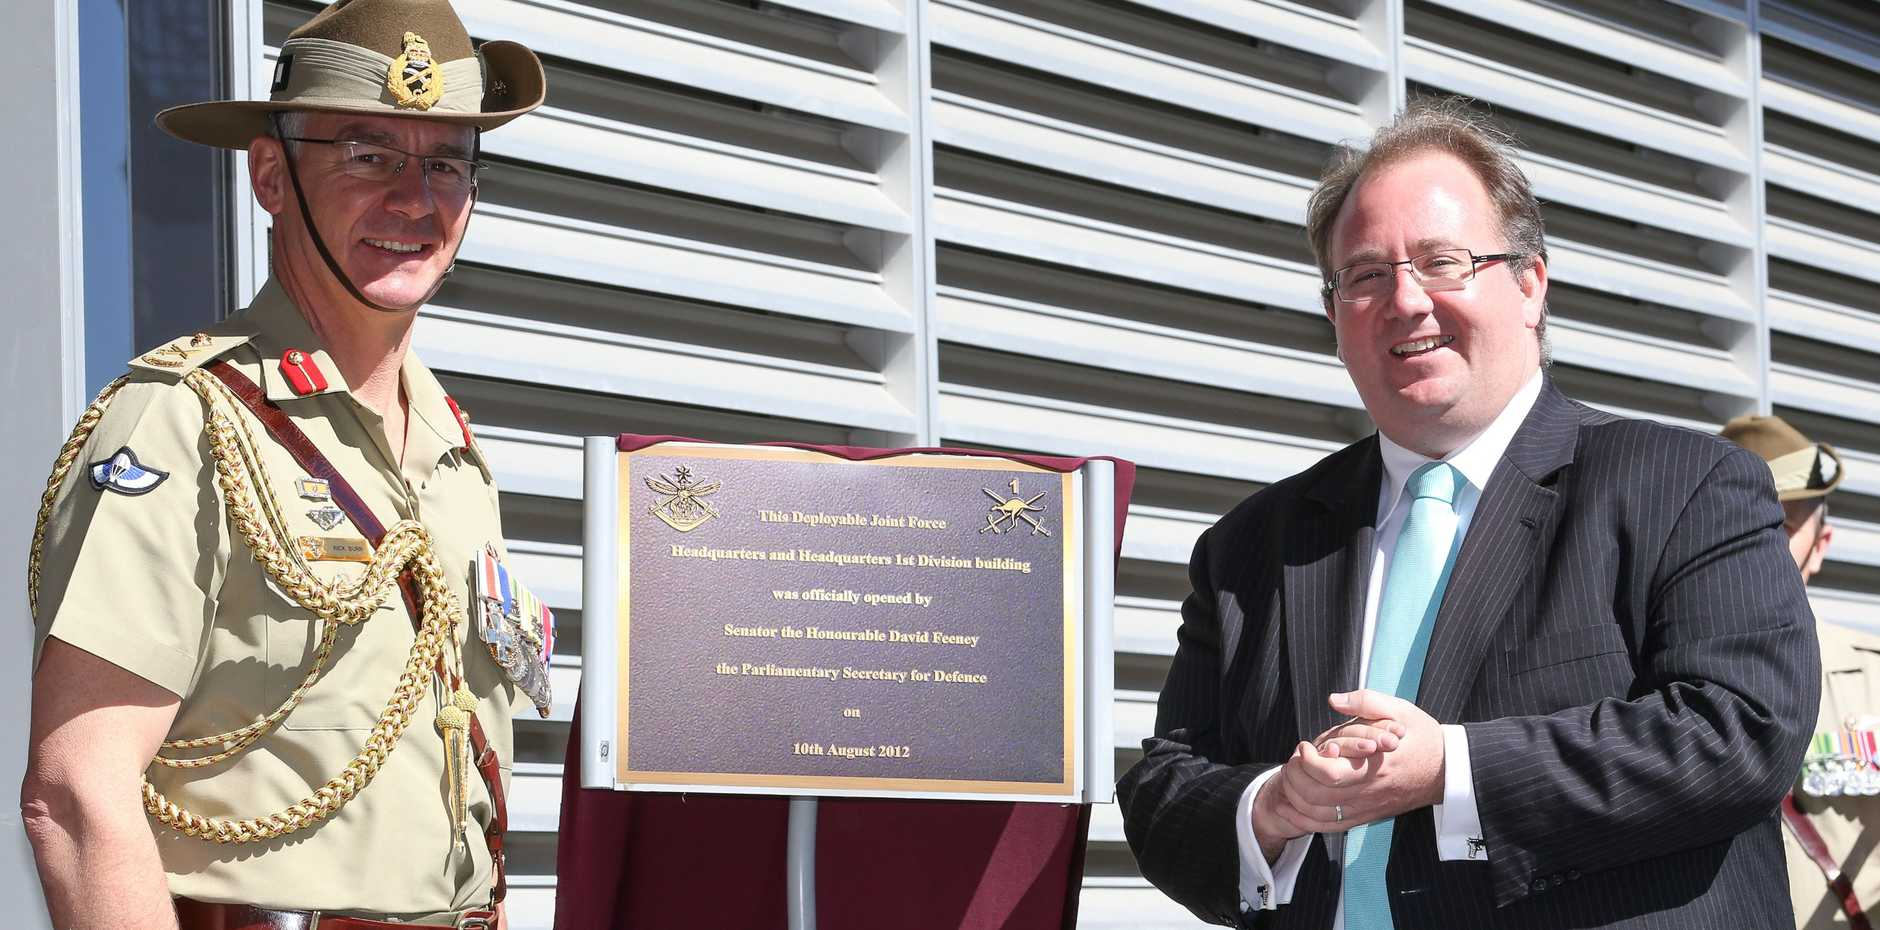 The Australian Army's new, purpose-built headquarters for 1st Division and Deployable Joint Force Headquarters were officially opened early yesterday (Aug 10) at Gallipoli Barracks, Enoggera by the Parliamentary Secretary for Defence, Senator David Feeney.